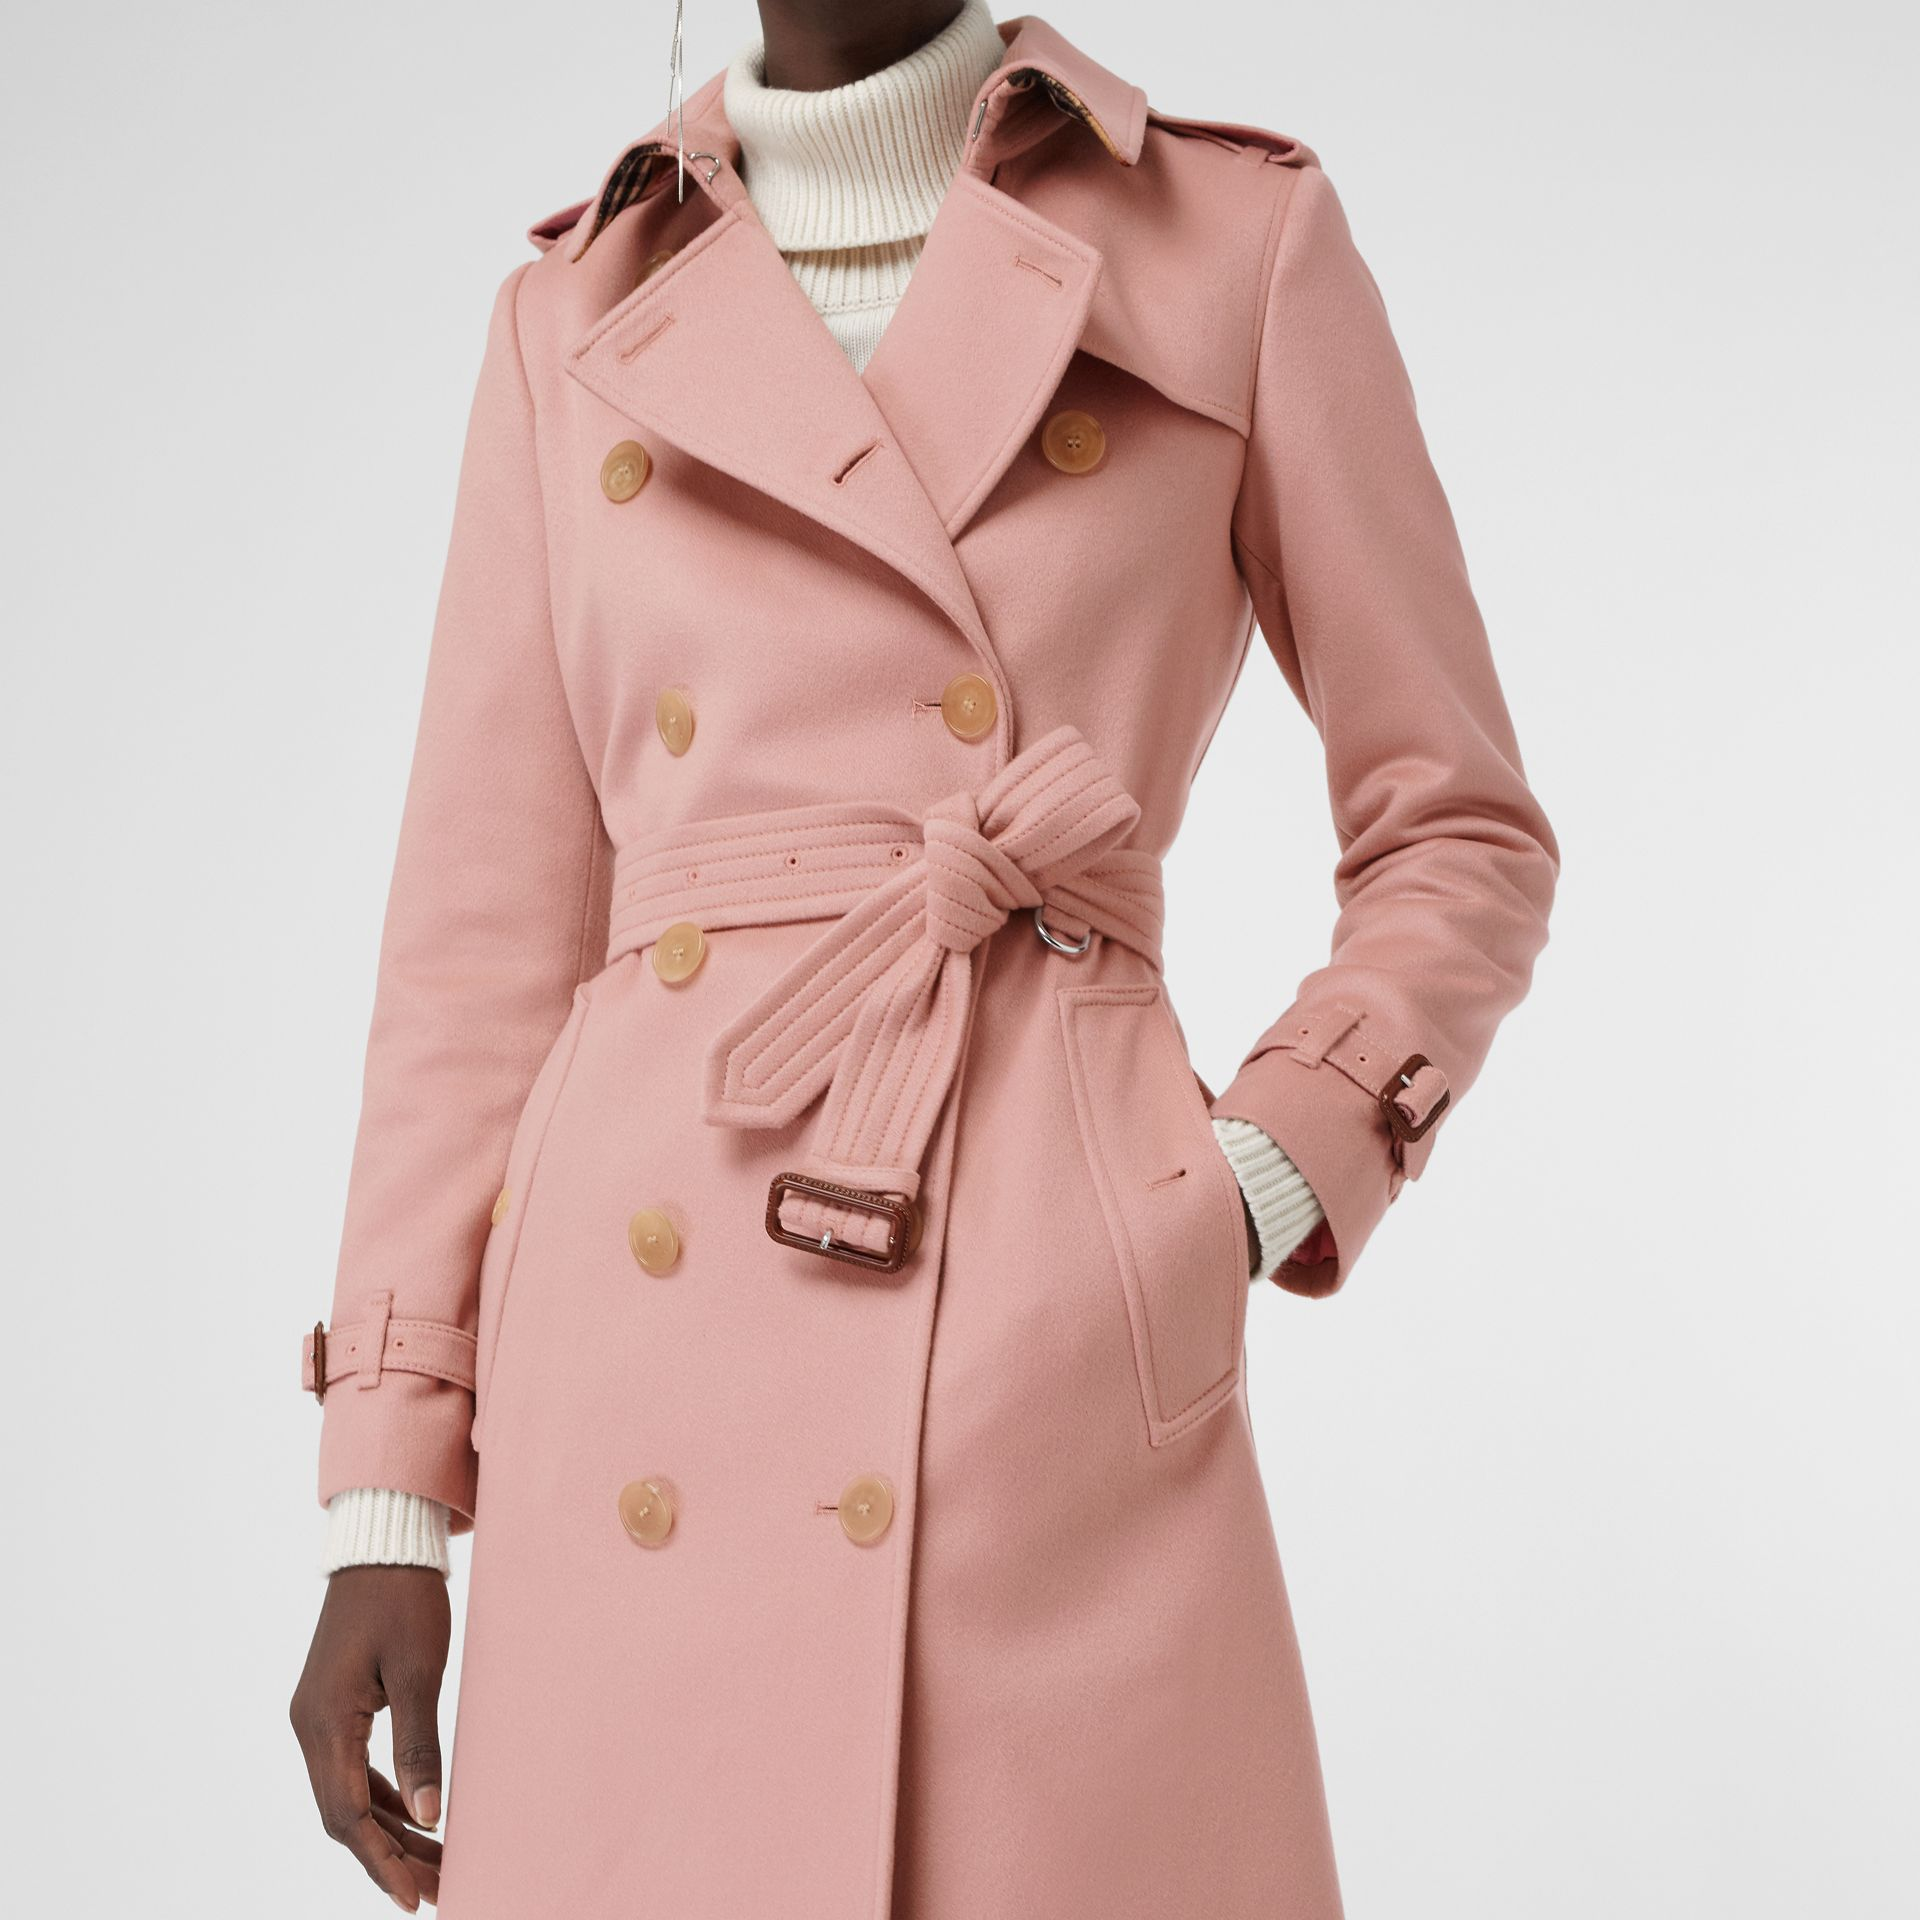 Cashmere Trench Coat in Chalk Pink - Women | Burberry Canada - gallery image 5